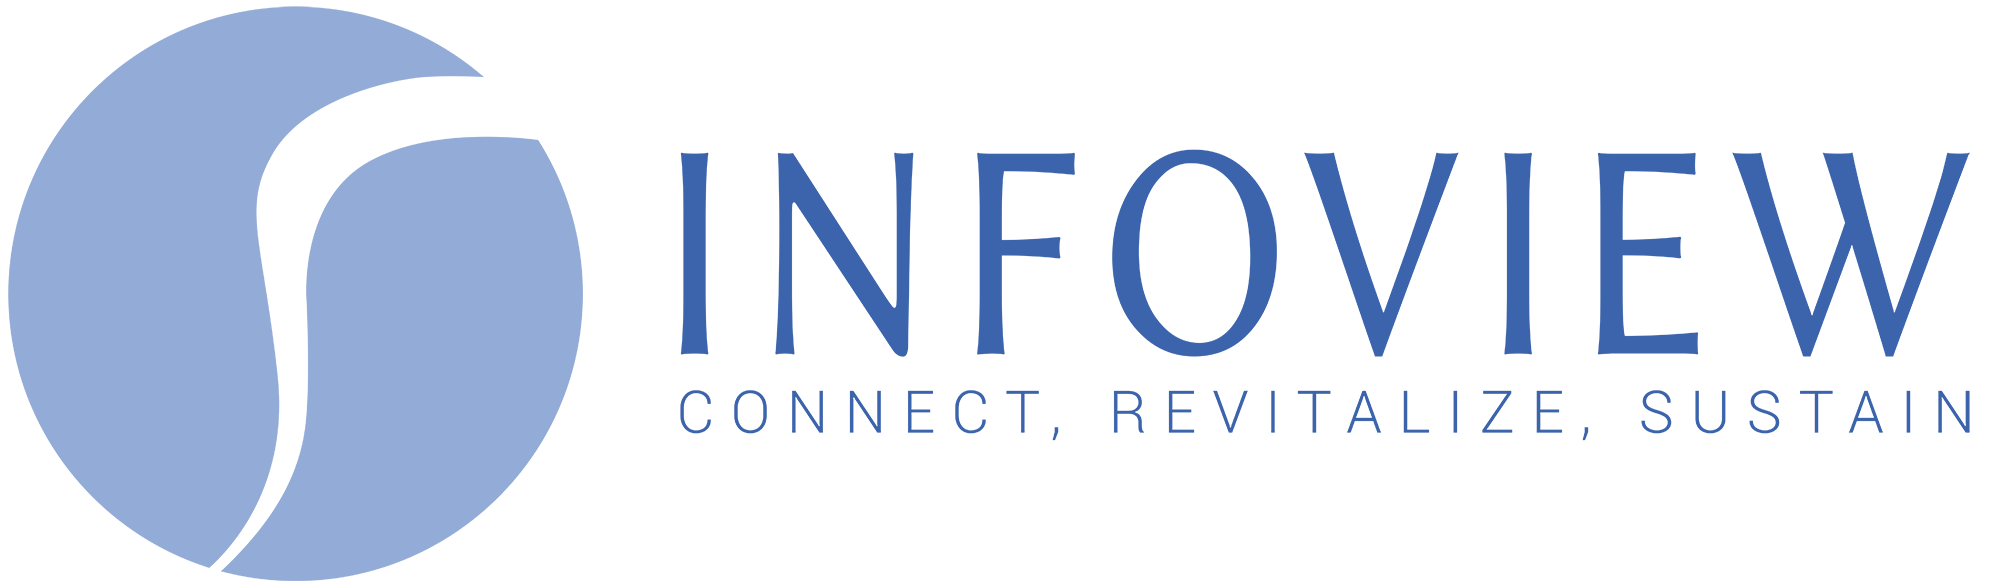 Infoview Systems Inc